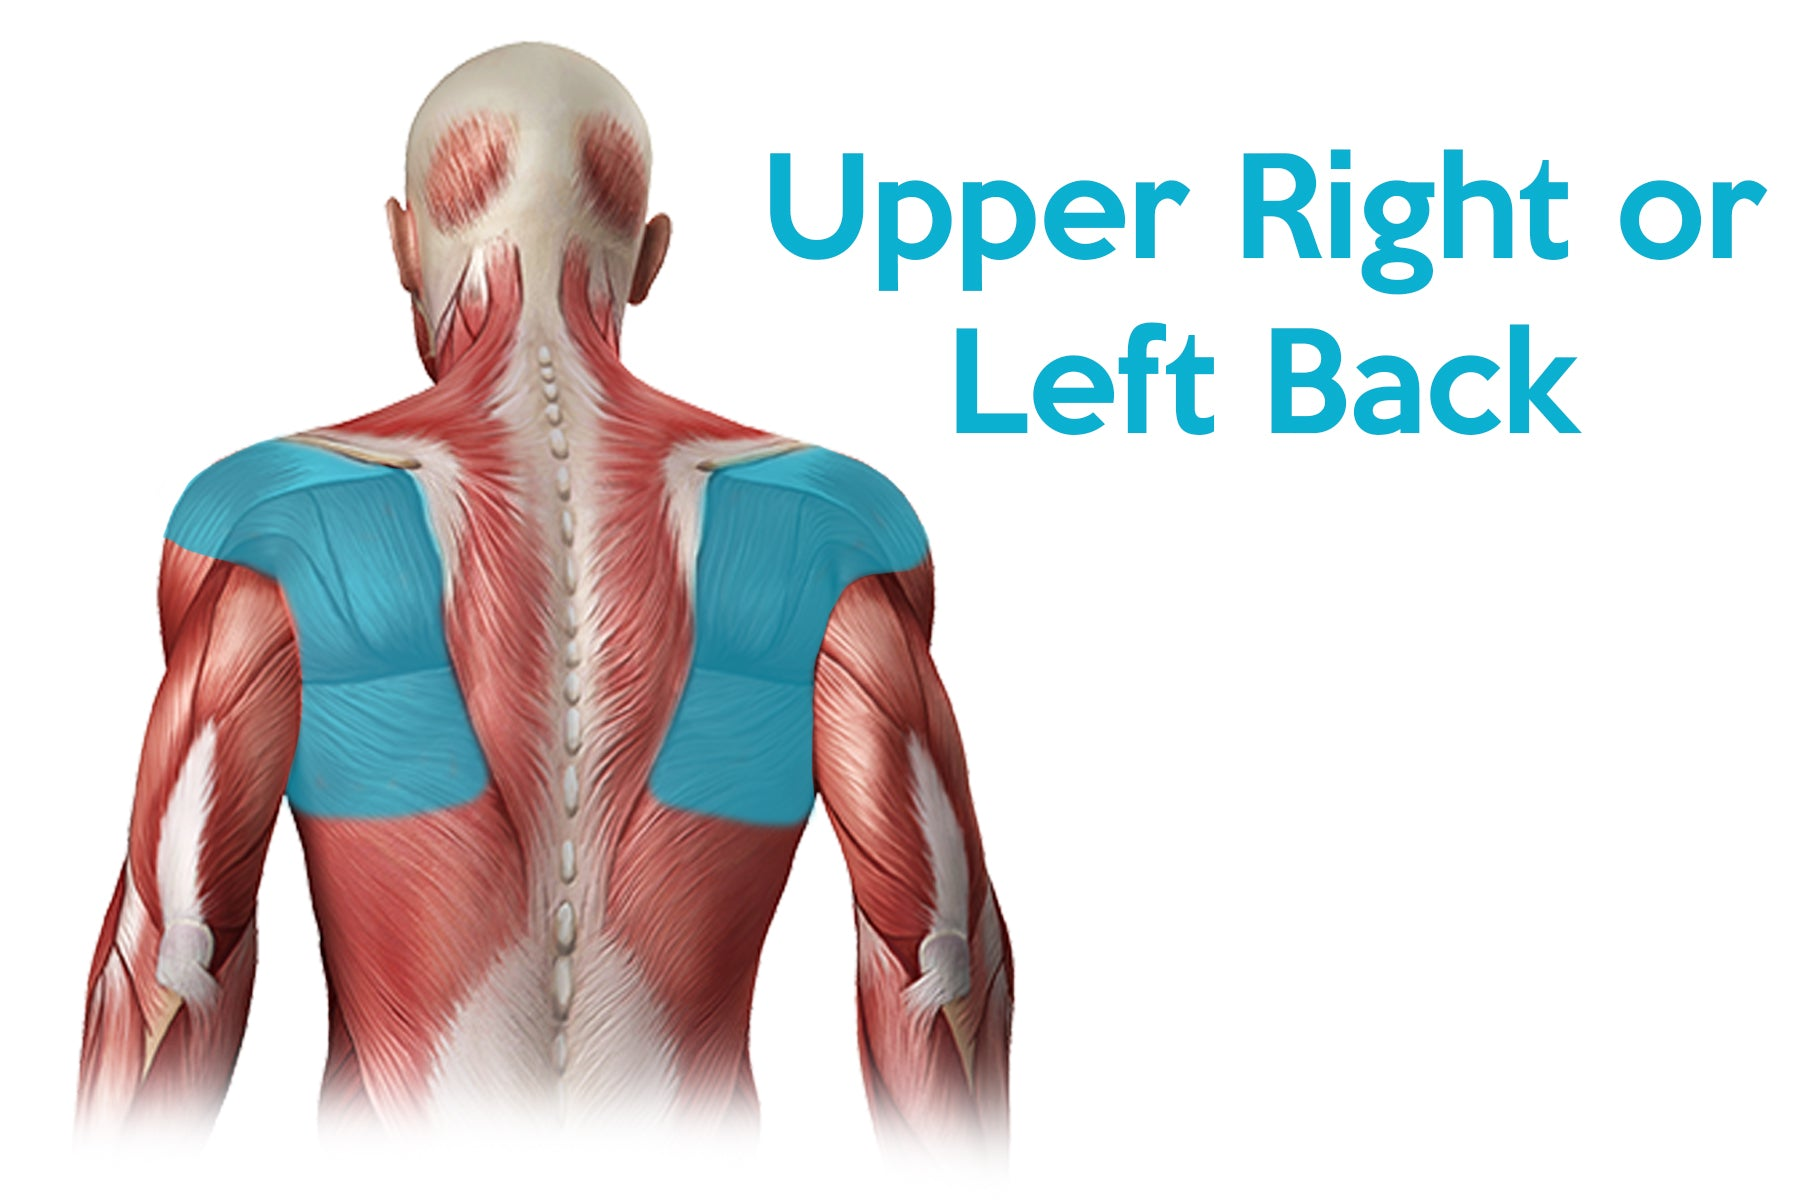 learn more about upper right and left back pain